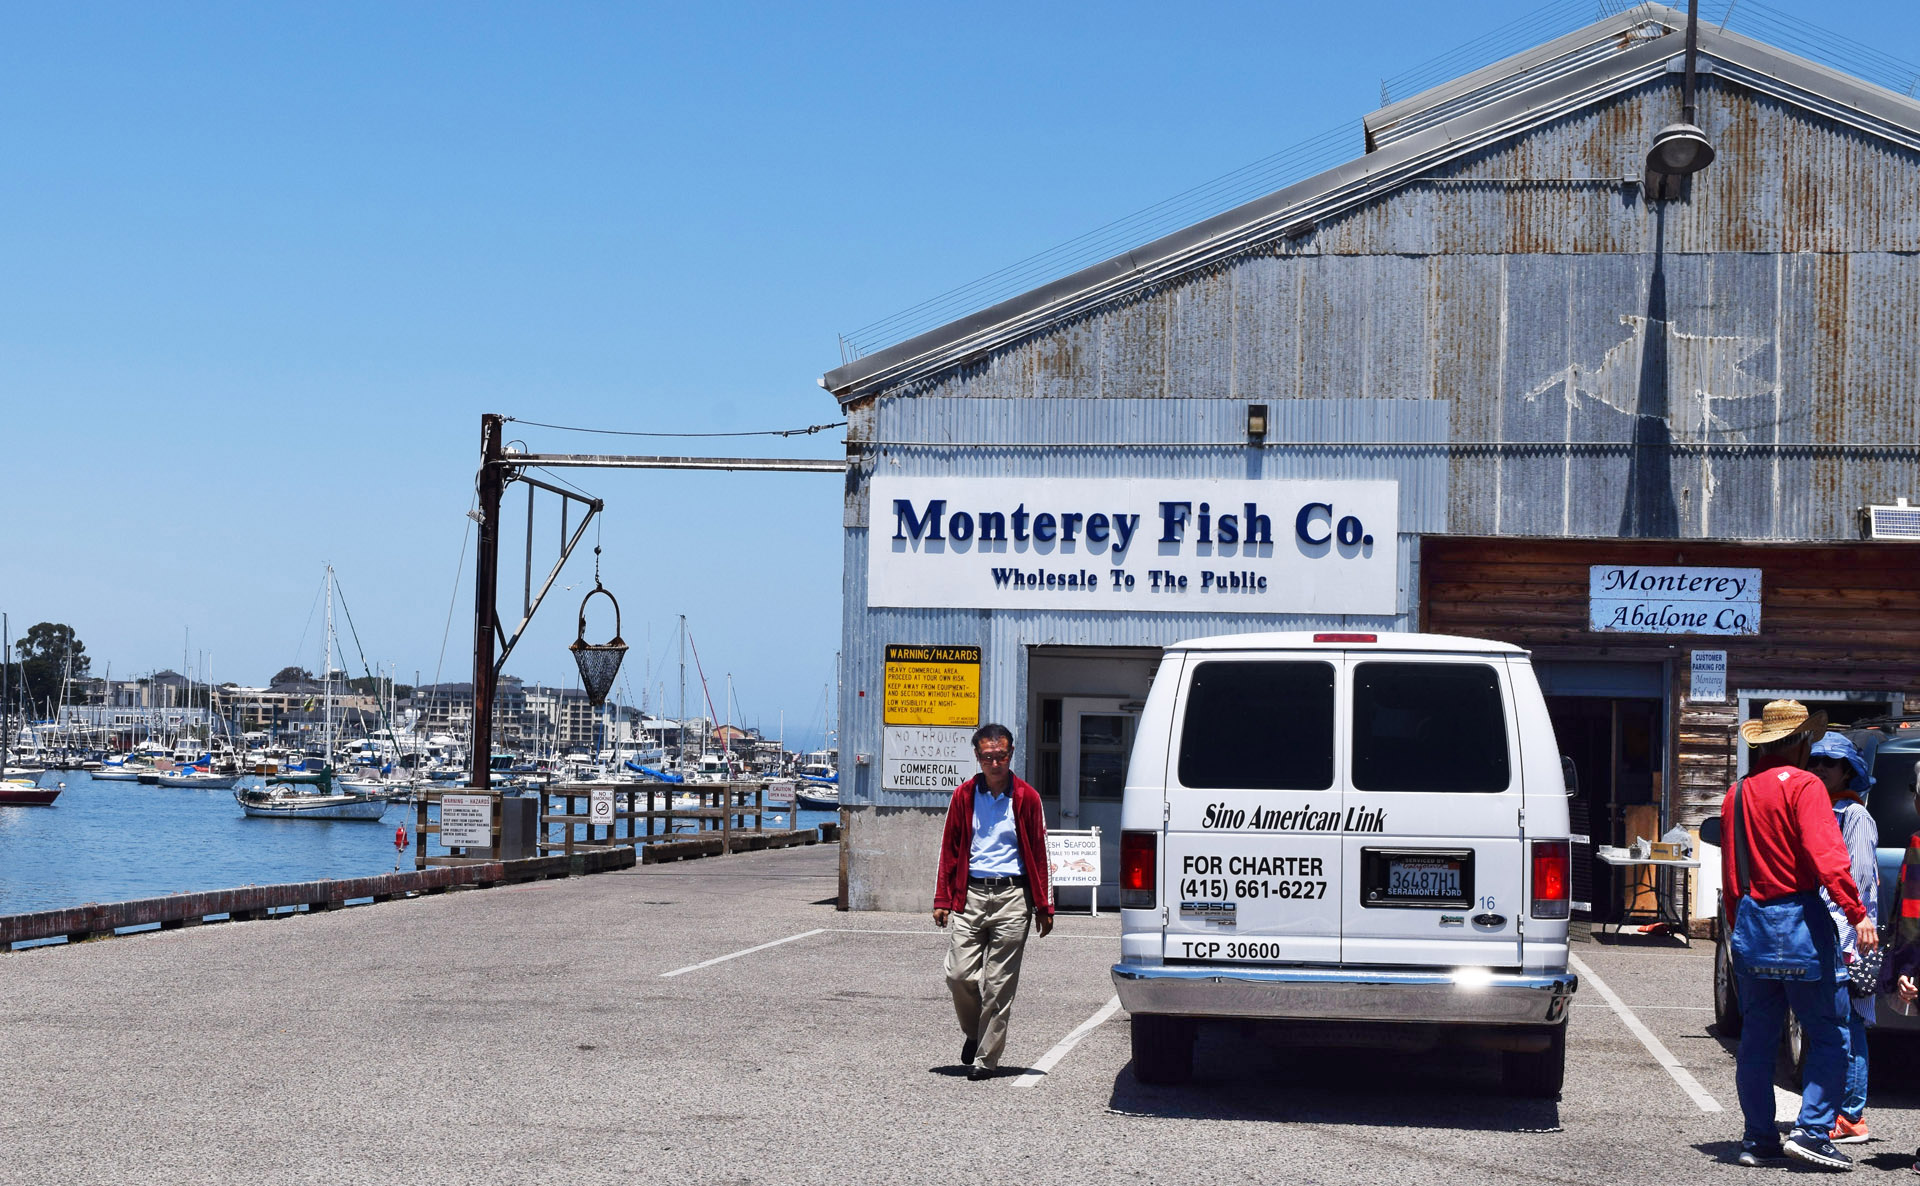 With its farm located under this municipal pier, Monterey Abalone Company (right) has a tiny office with a trapdoor and ladder that accesses its growing abalone population.